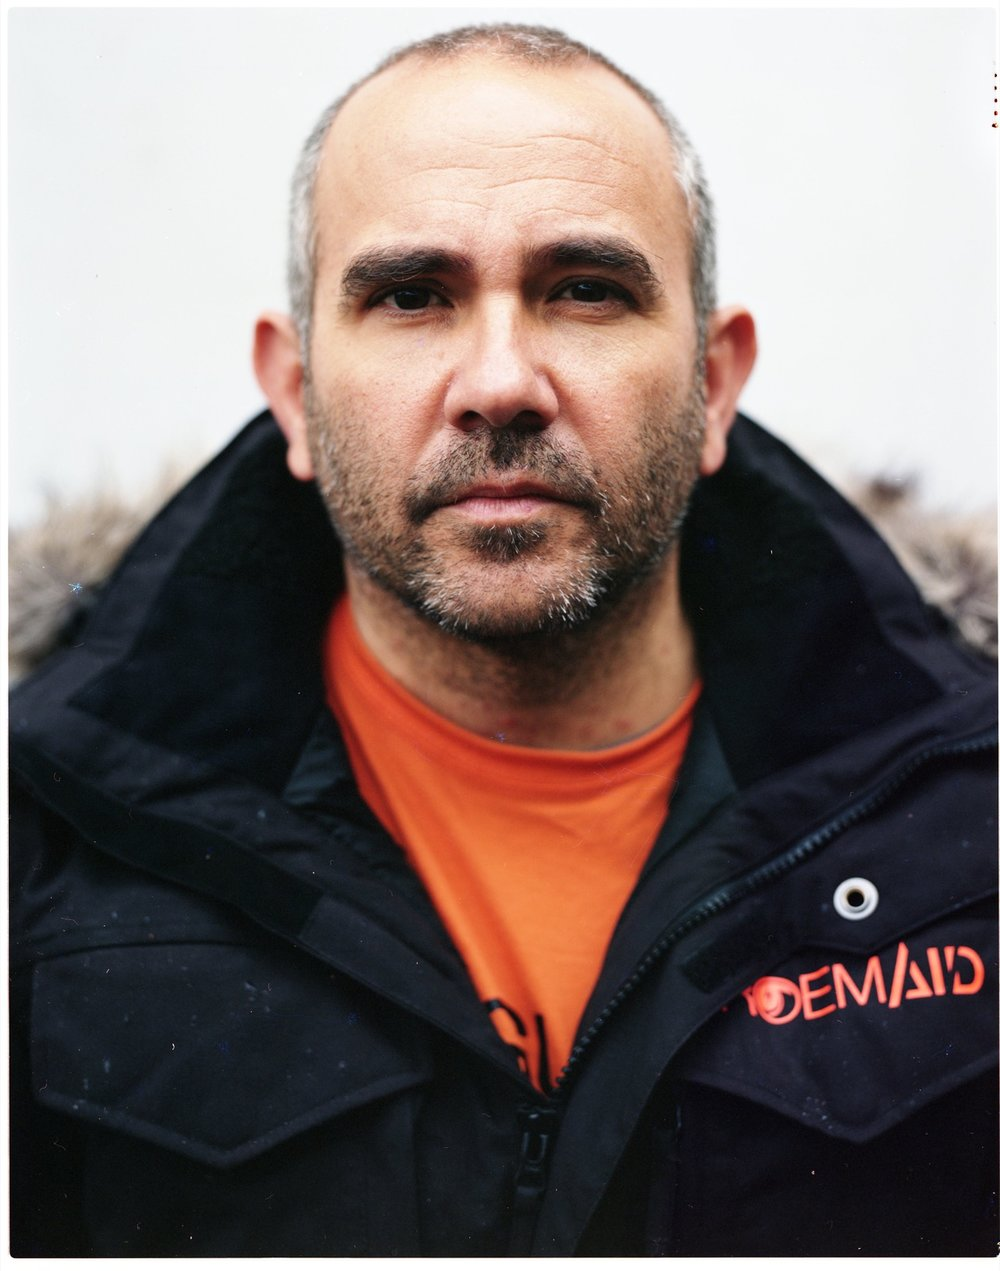 Manuel Blanco, a firefighter from Seville, Spain, and a volunteer lifeguard on Lesbos, Greece, in charge of a team of firefighters from the Spanish N.G.O. Proem-Aid. Manuel, two other Spanish firefighters, and two Danish volunteers with the N.G.O. Team Humanity were arrested on the Greek island of Lesbos on January 14, 2016, and charged with human trafficking when they went to help a refugee boat that was thought to be sinking. They were released on January 17, 2016, with a 15,000-euro fine.